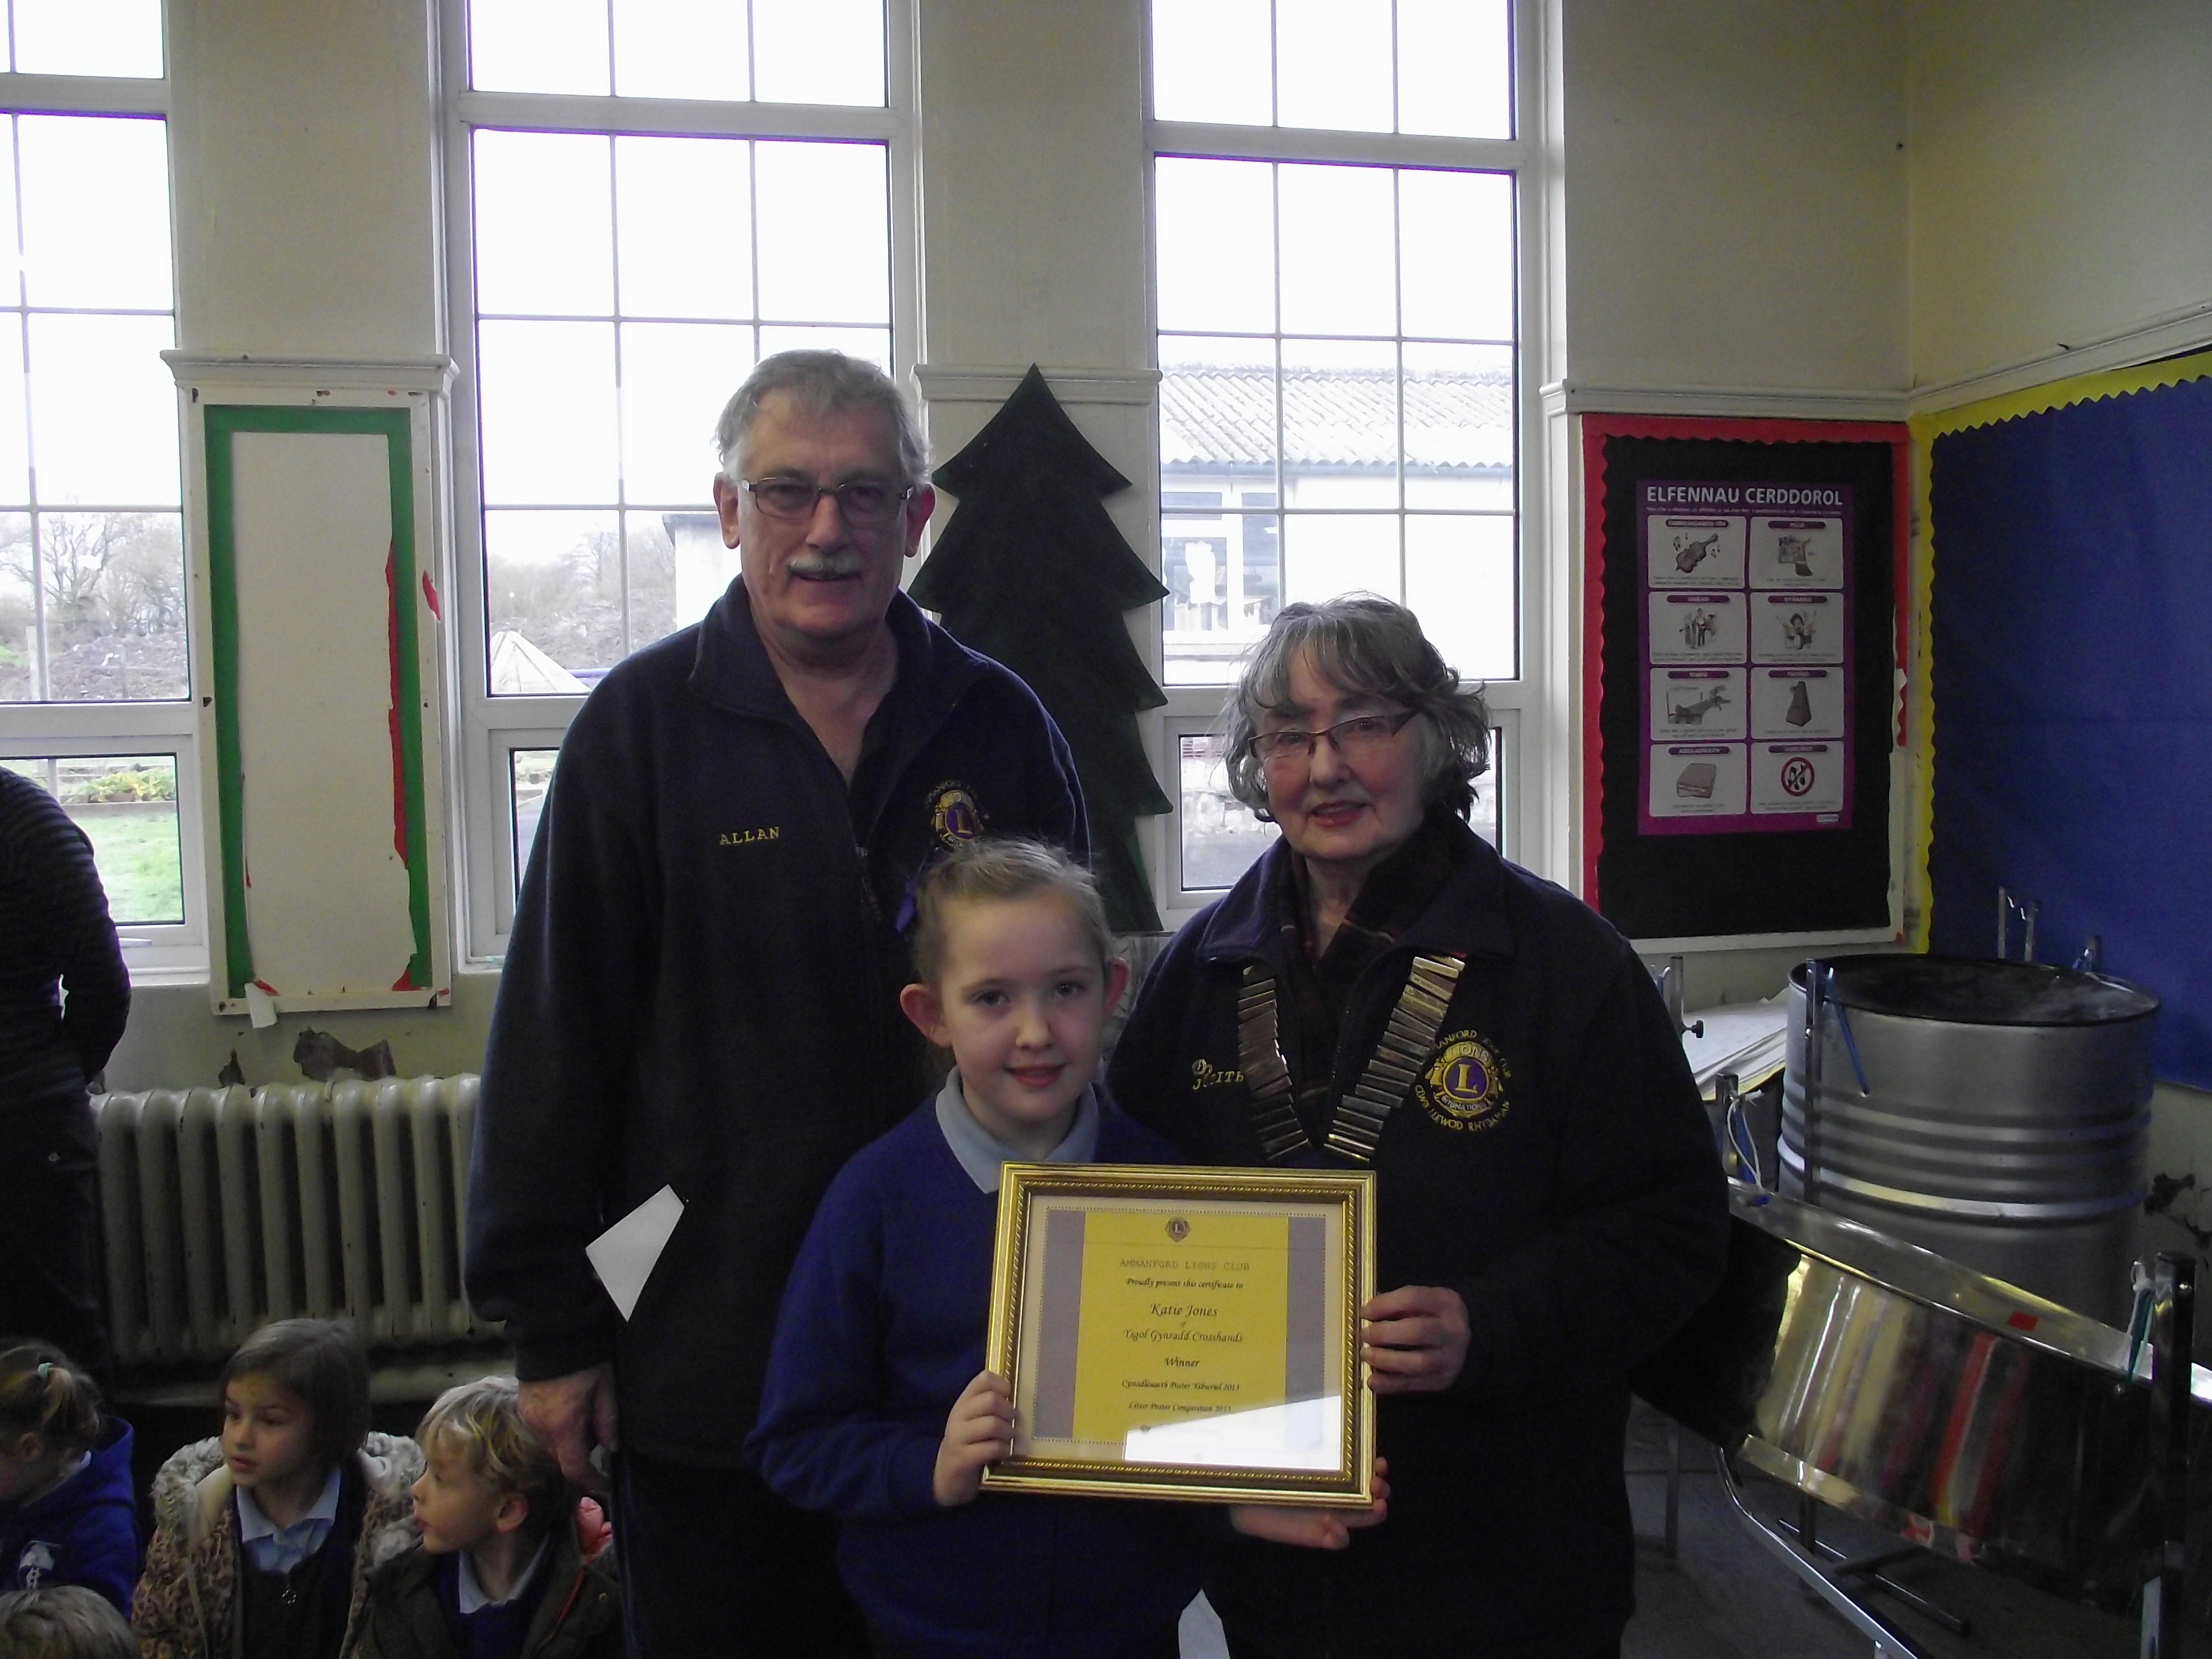 Presenting cheque and certificate to winner at Crosshands Primary School